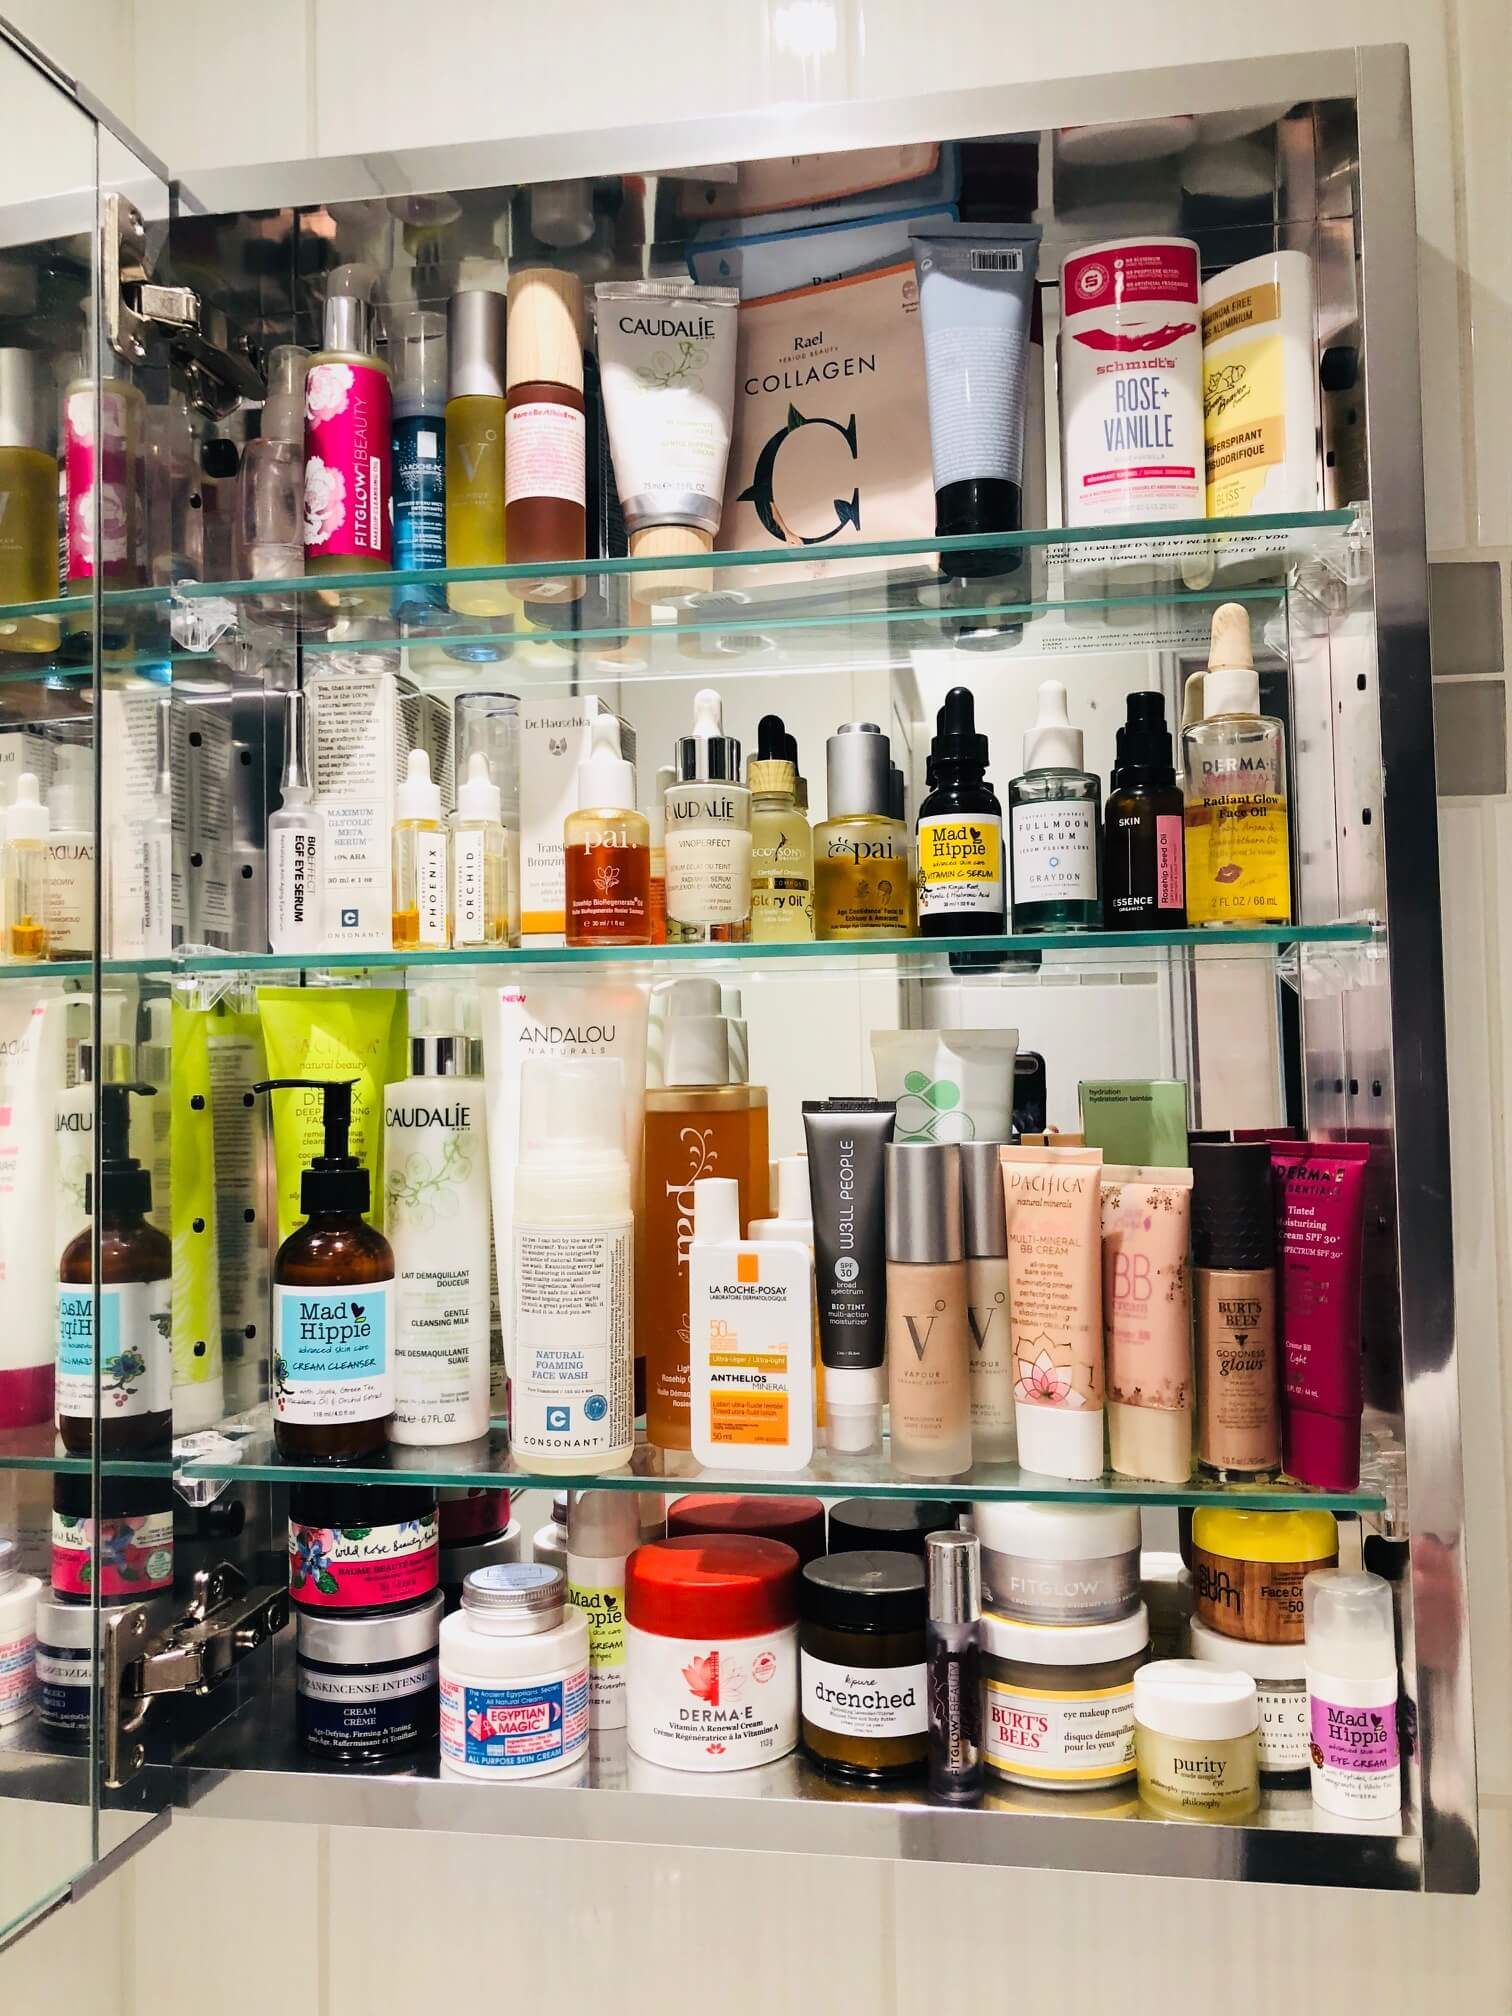 Beauty products in a medicine cabinet